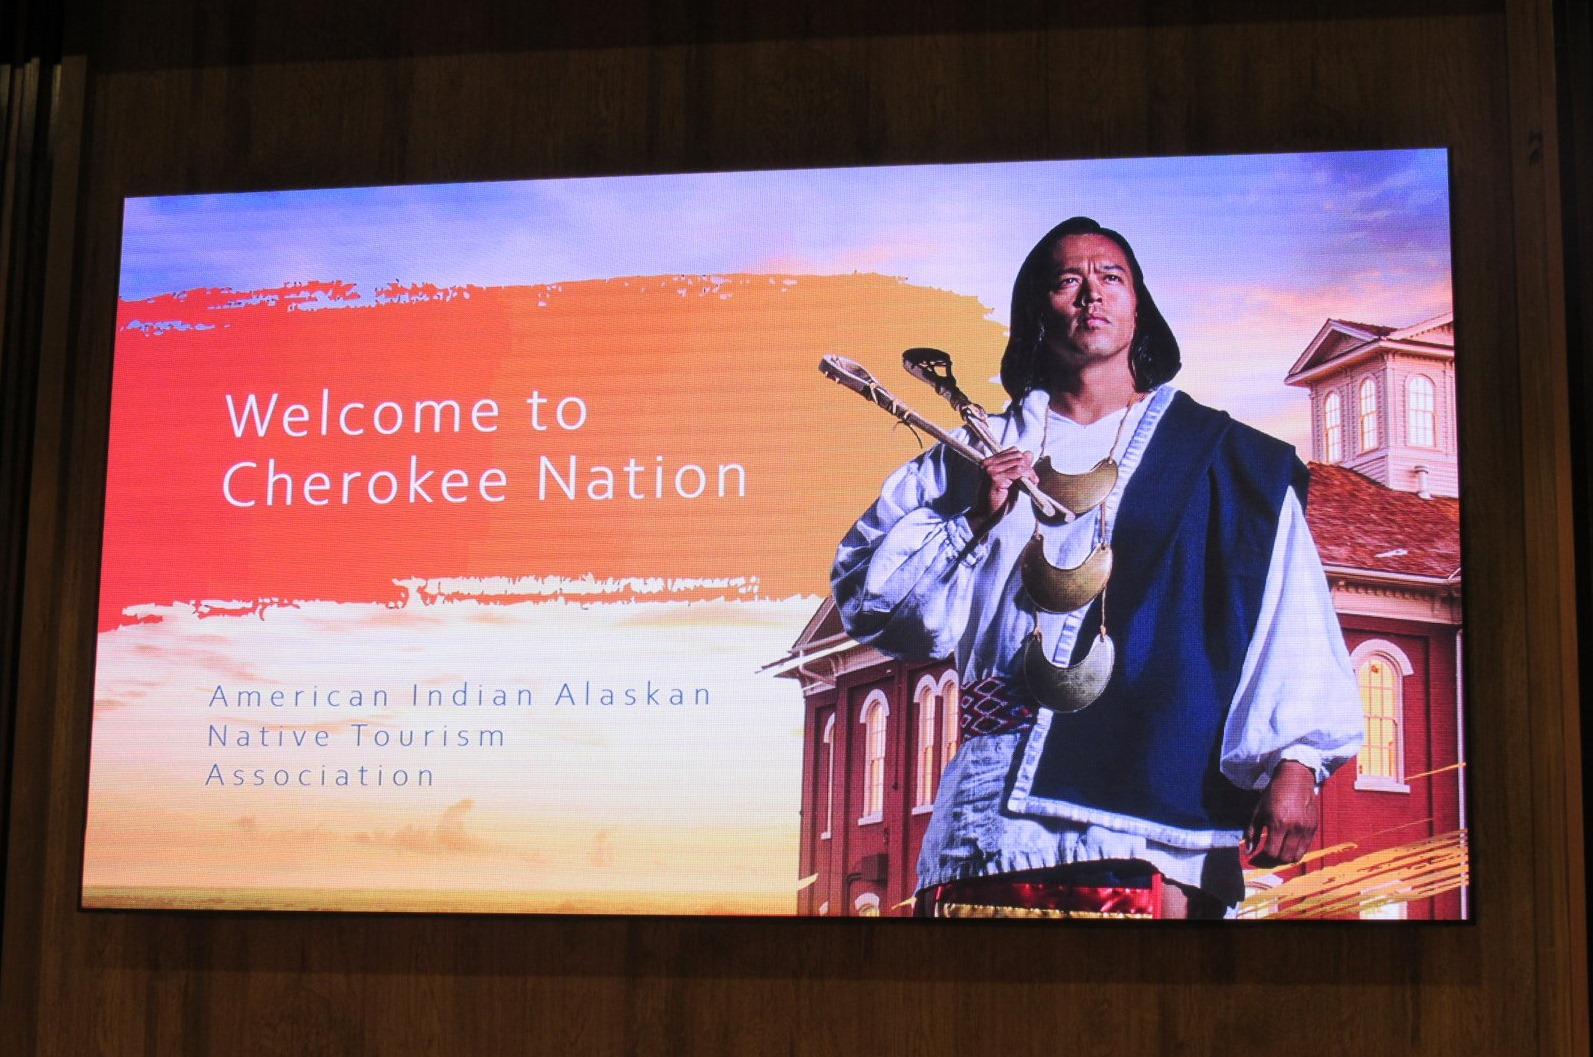 21st American Indian Tourism Conference Underway at Cherokee Nation's Hard Rock Hotel & Casino Tulsa